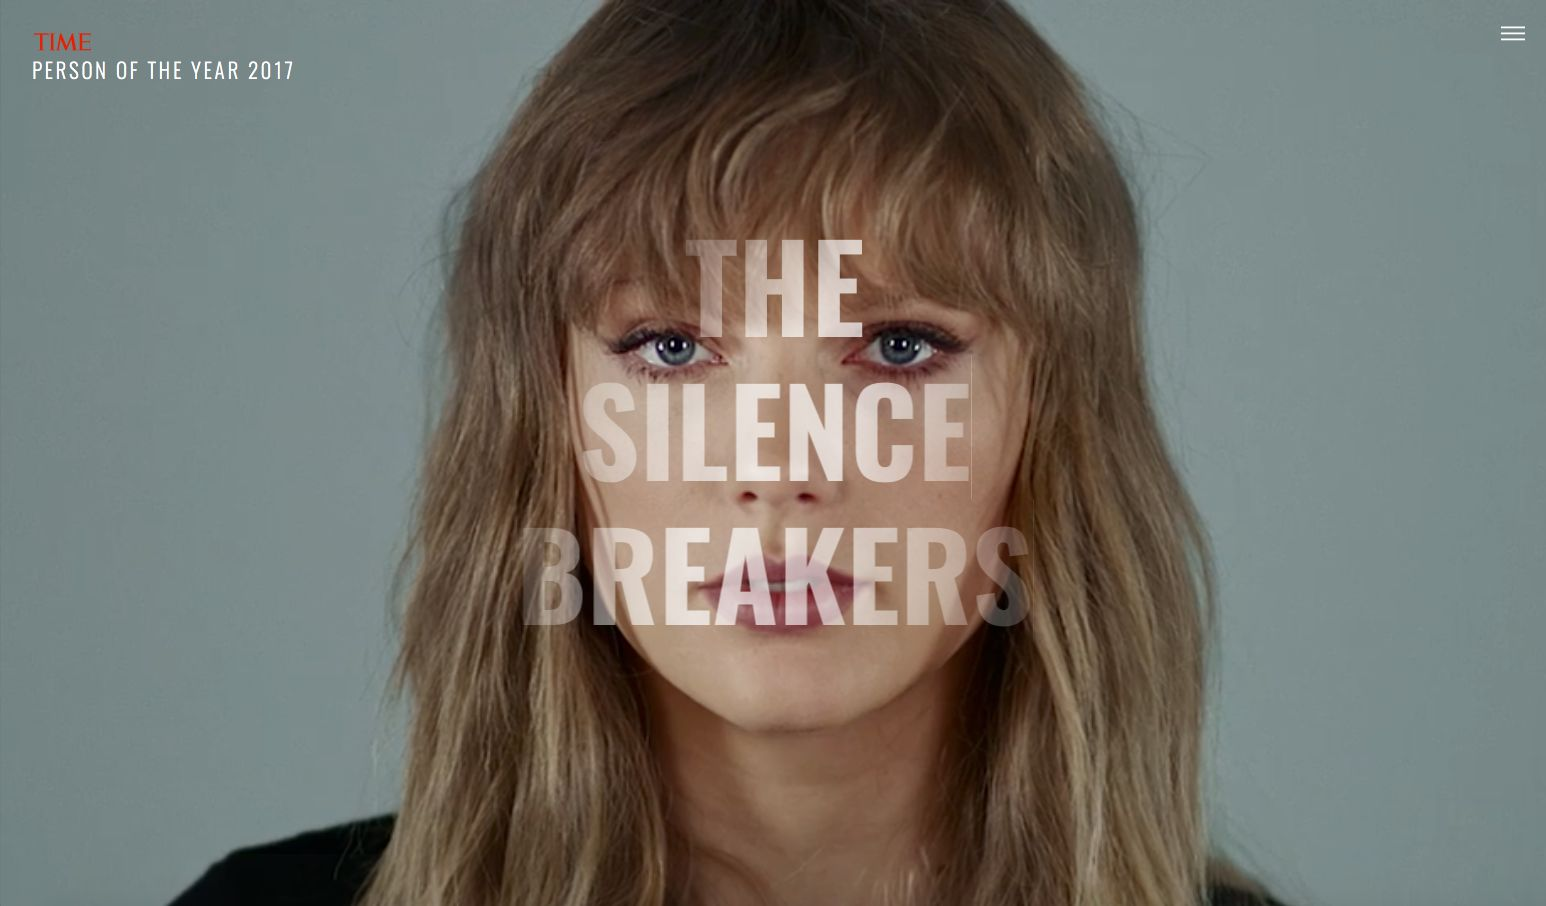 the-silence-breakers-time-magazine